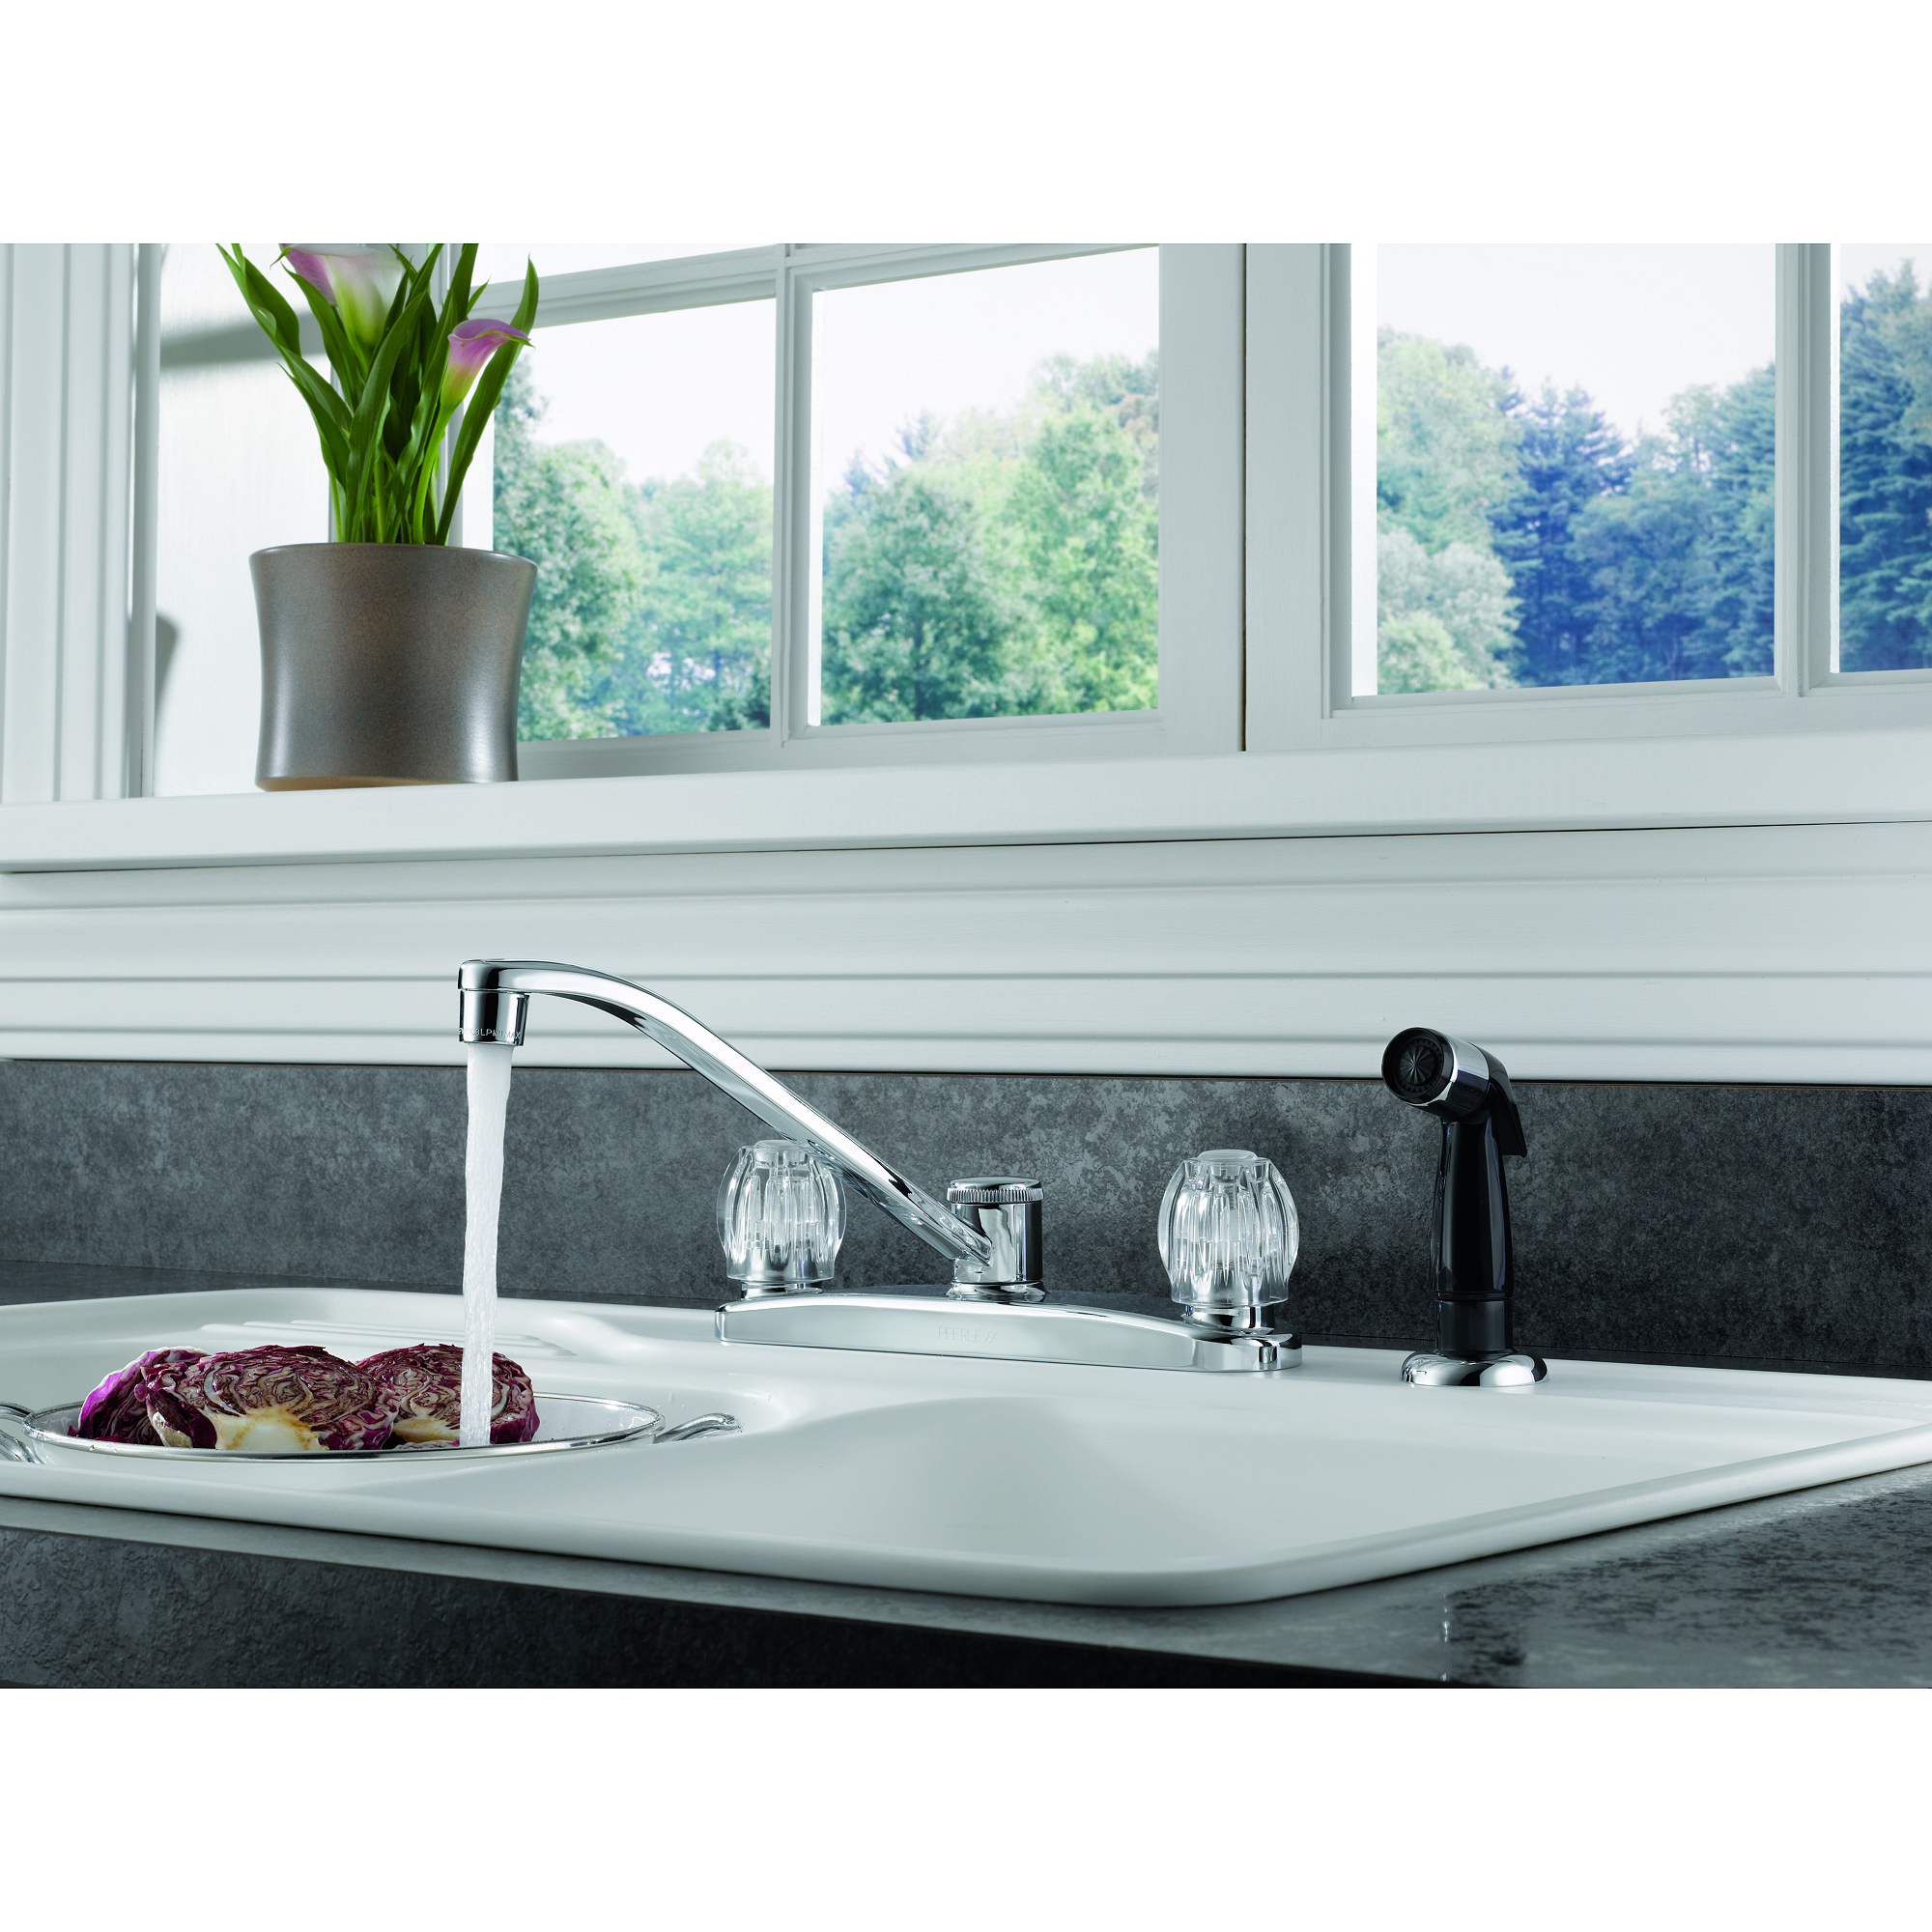 Kitchen Sink Faucets at Lowes | Home Depot Kitchen Faucet | Kitchen Faucets